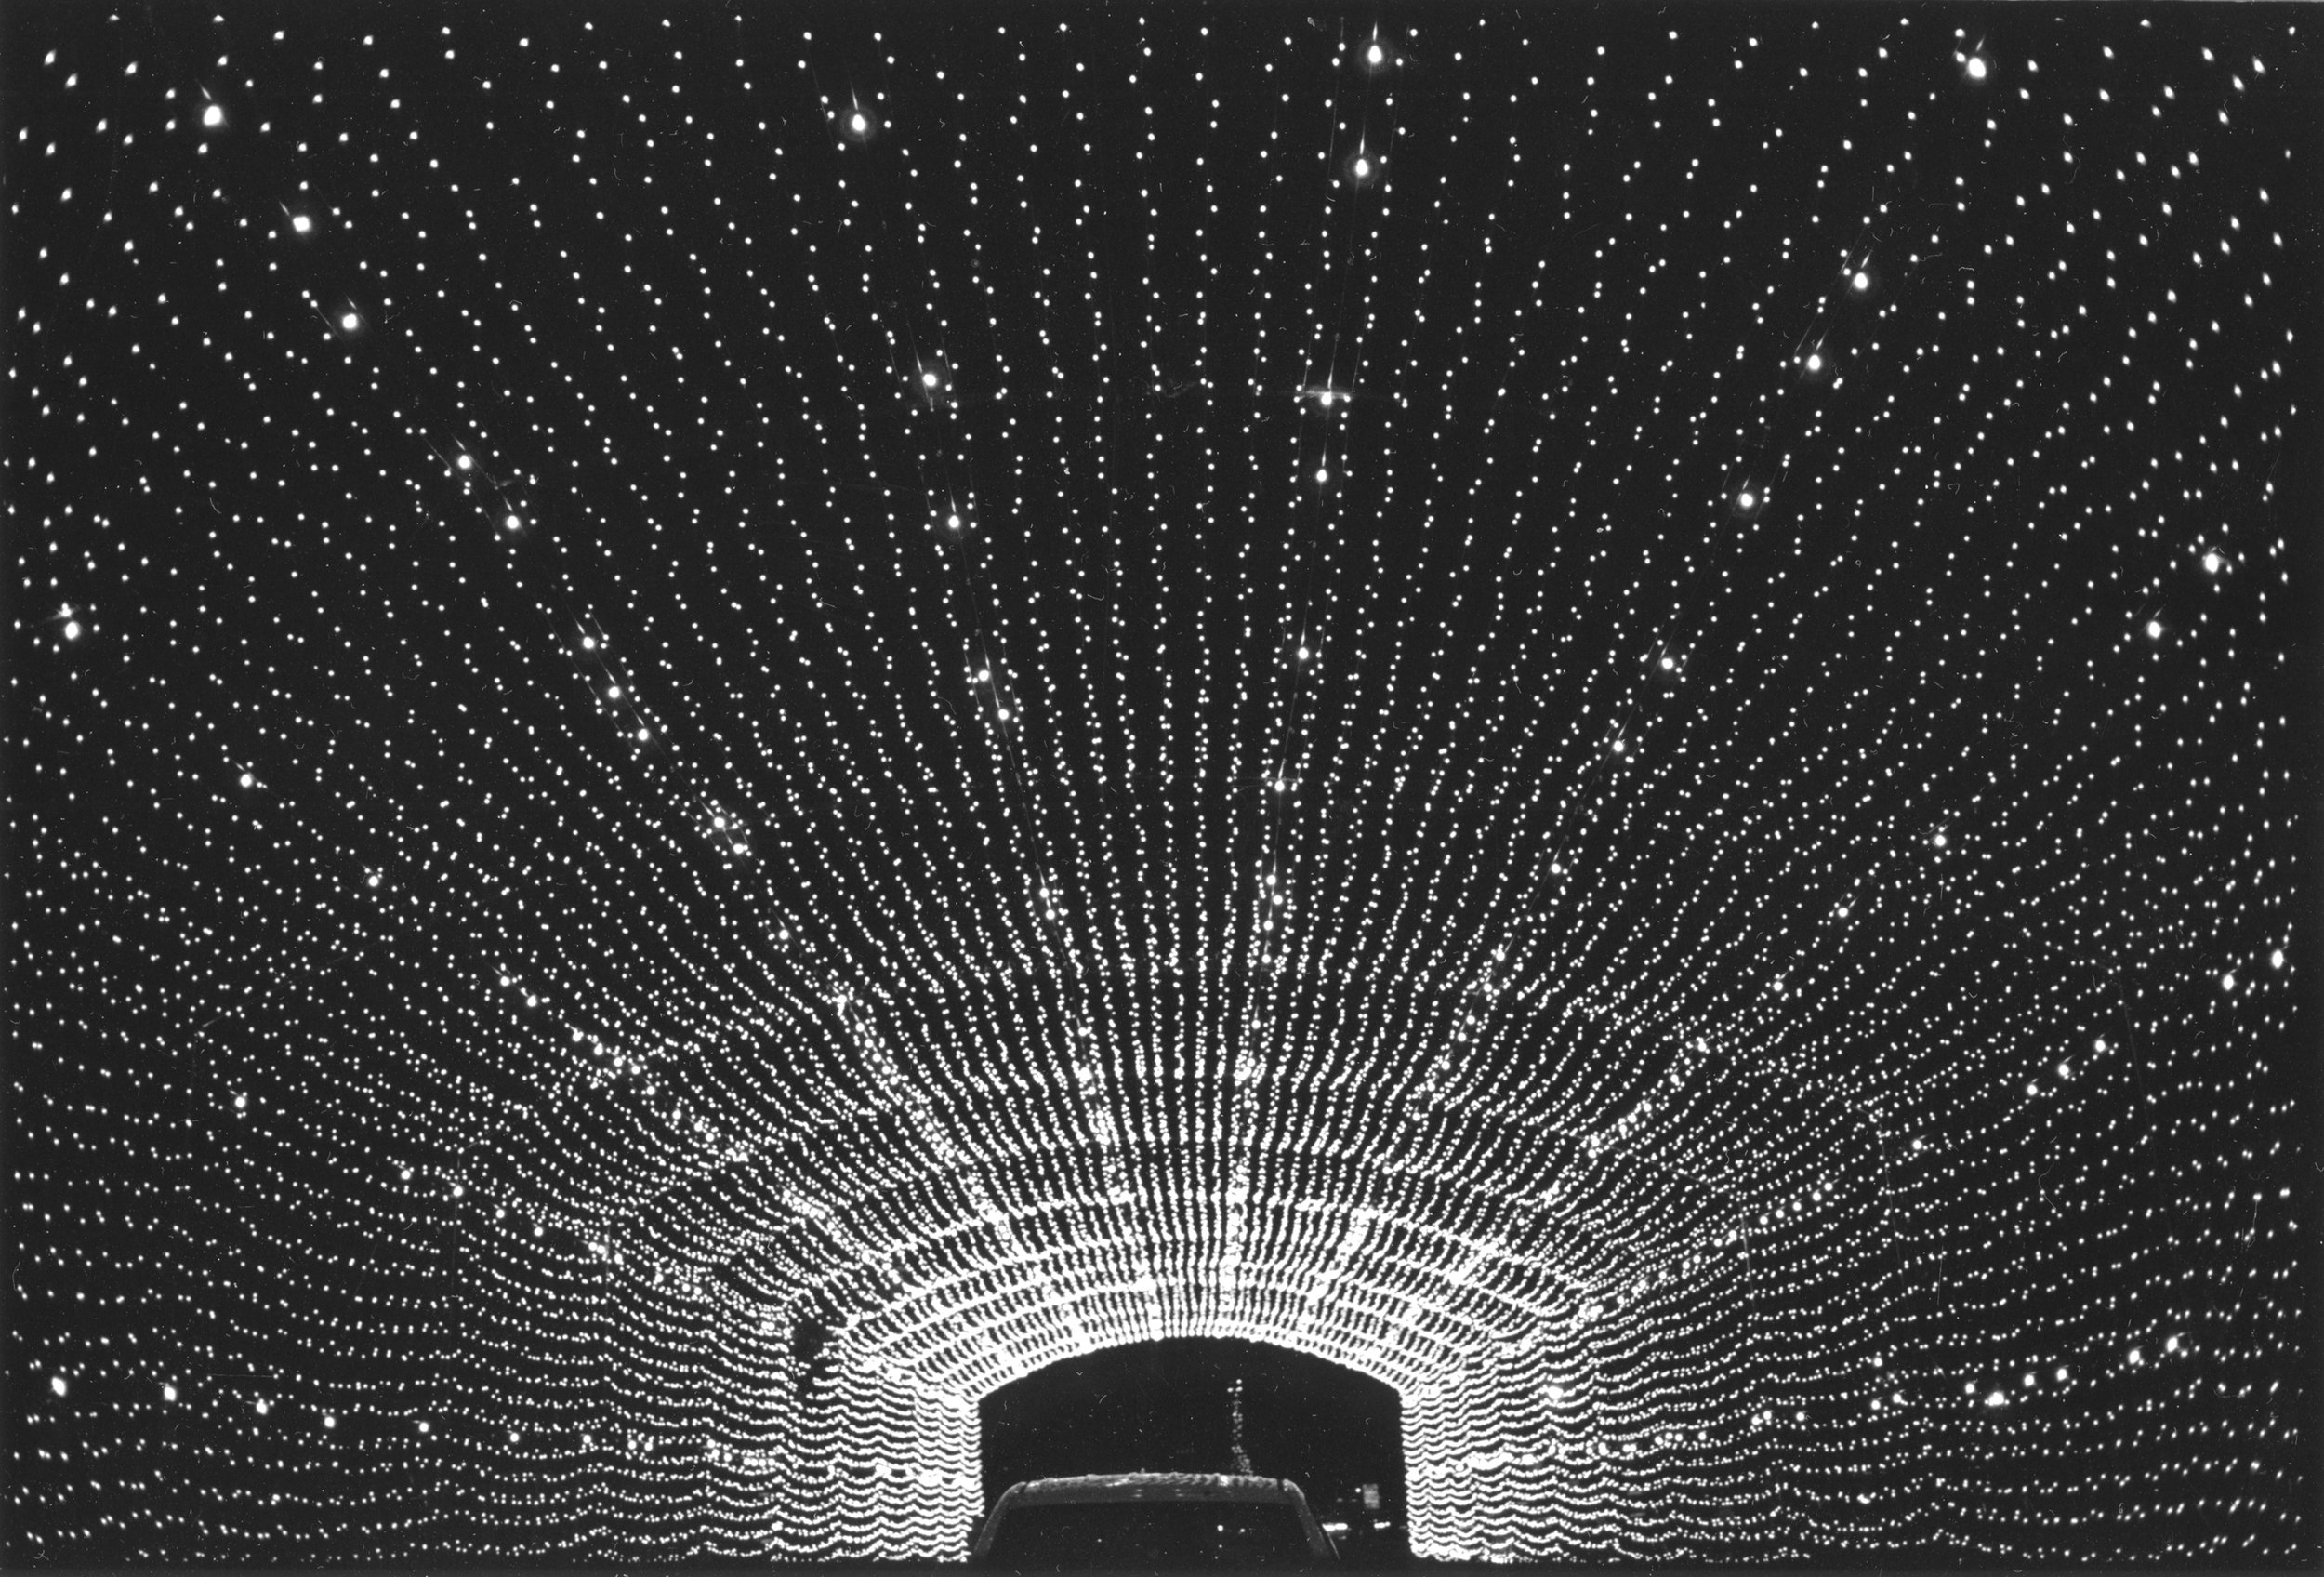 20496938-Botkin, Night Lights Tunnel, Silver Gelatin Print, 2004, $750.jpg